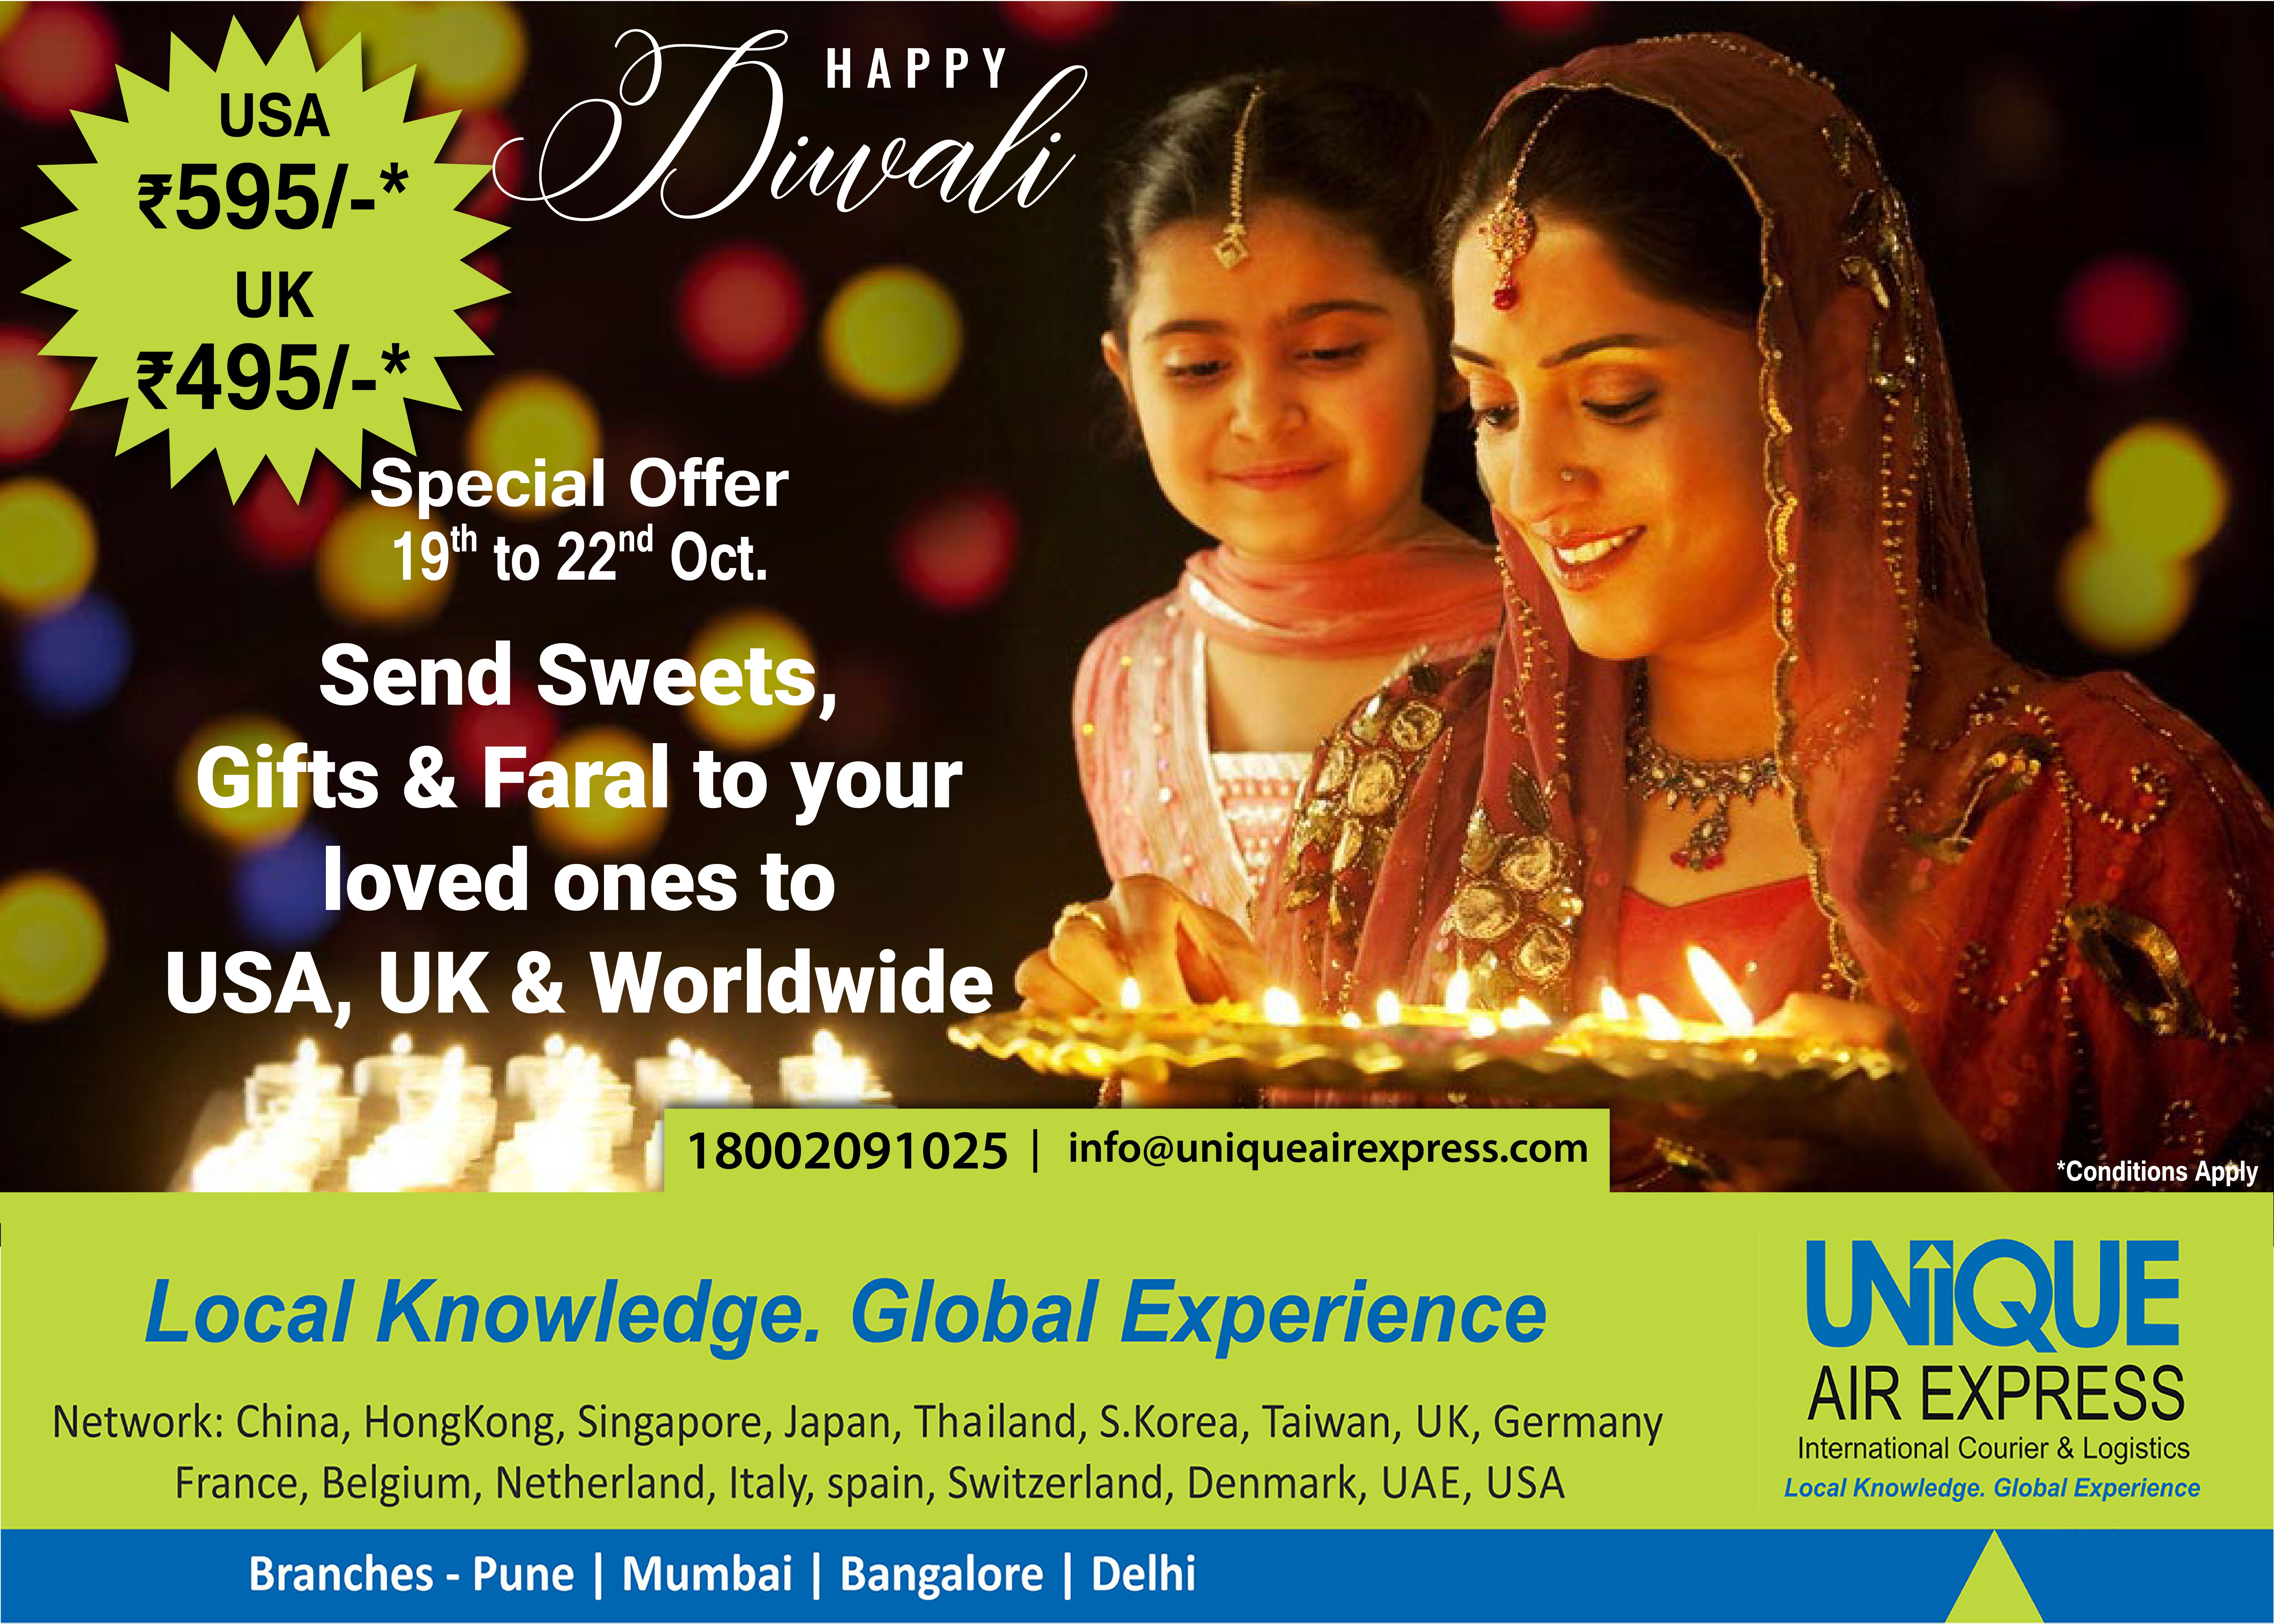 Diwali Booking started! Make sure your parcel reaches USA